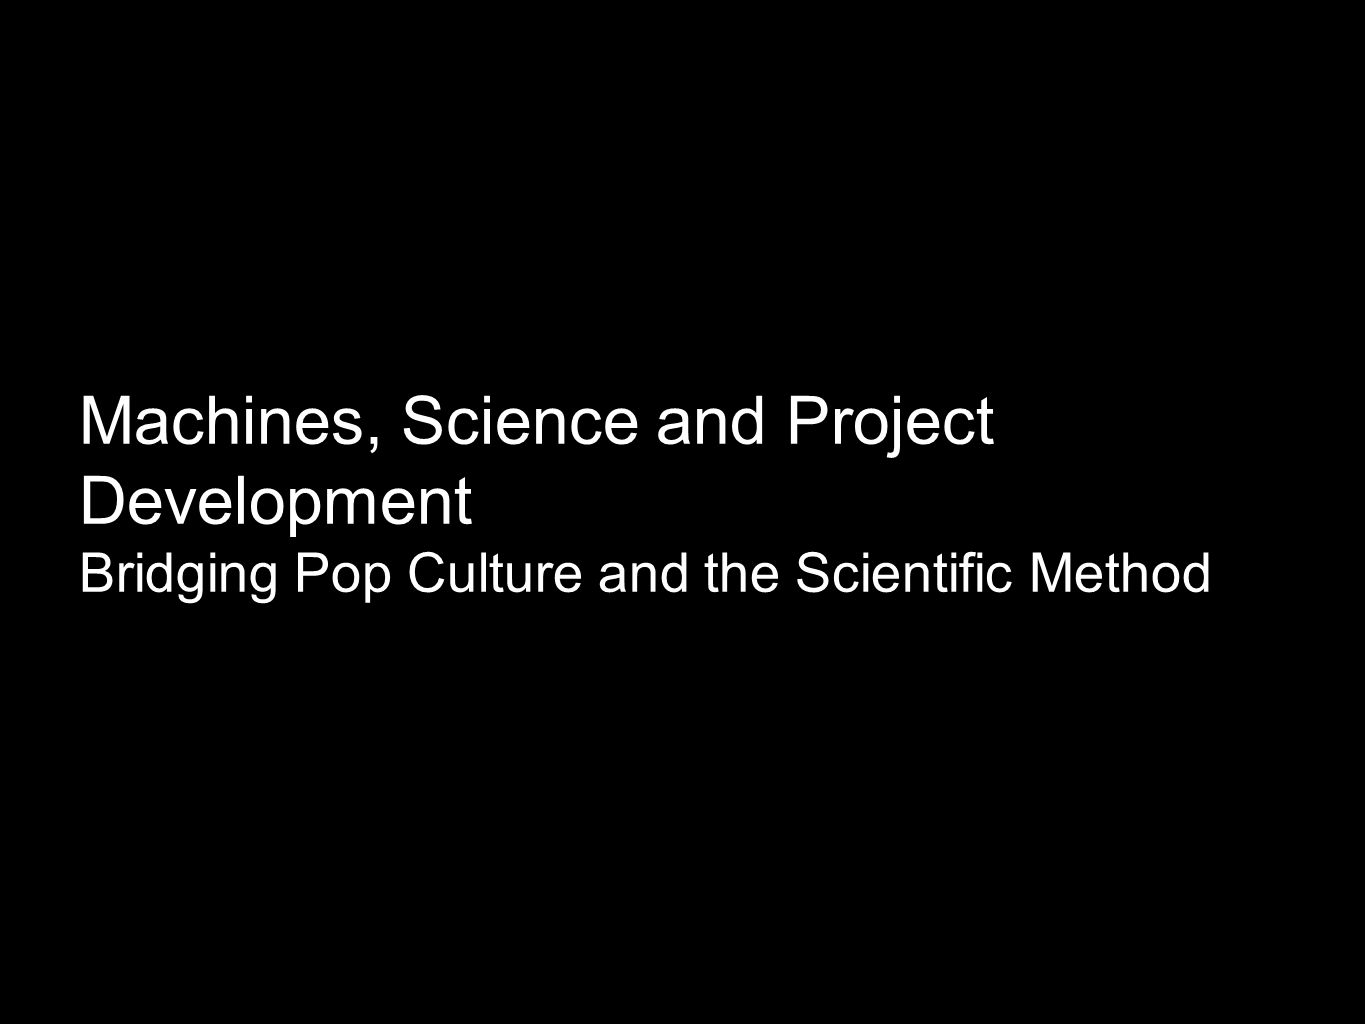 Machines, Science and Project Development Bridging Pop Culture and the Scientific Method